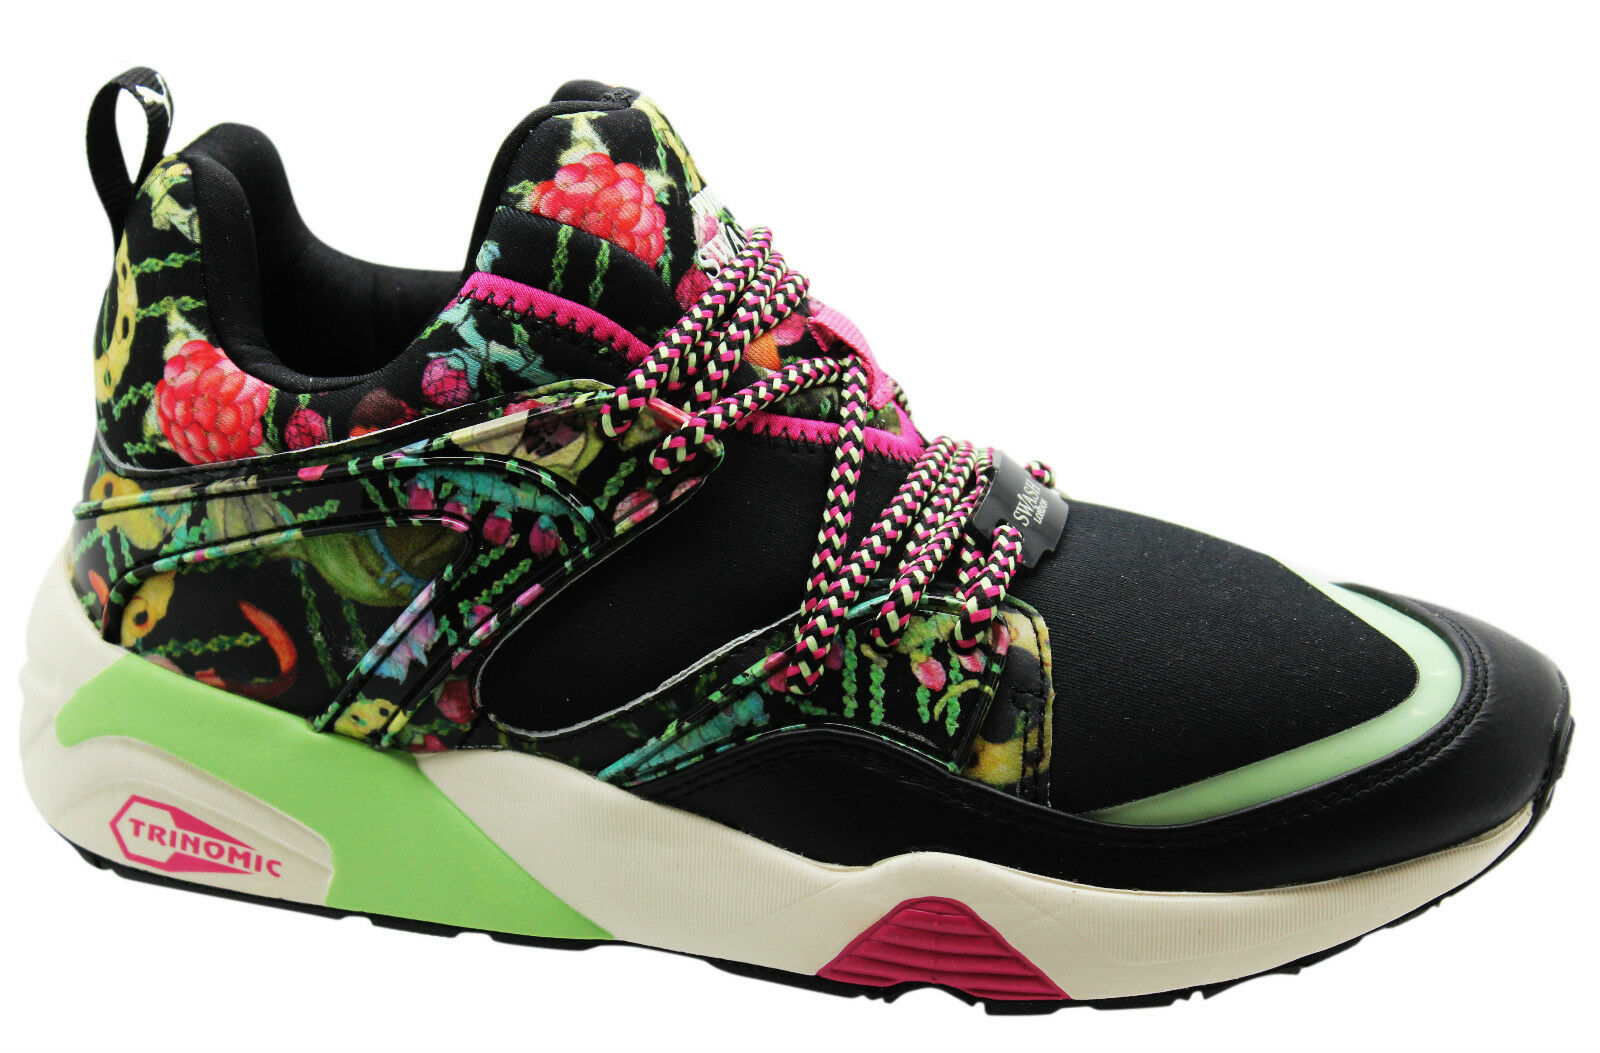 Puma Trinomic Blaze of Glory x Swash W London Womens Trainers 358862 01 U119